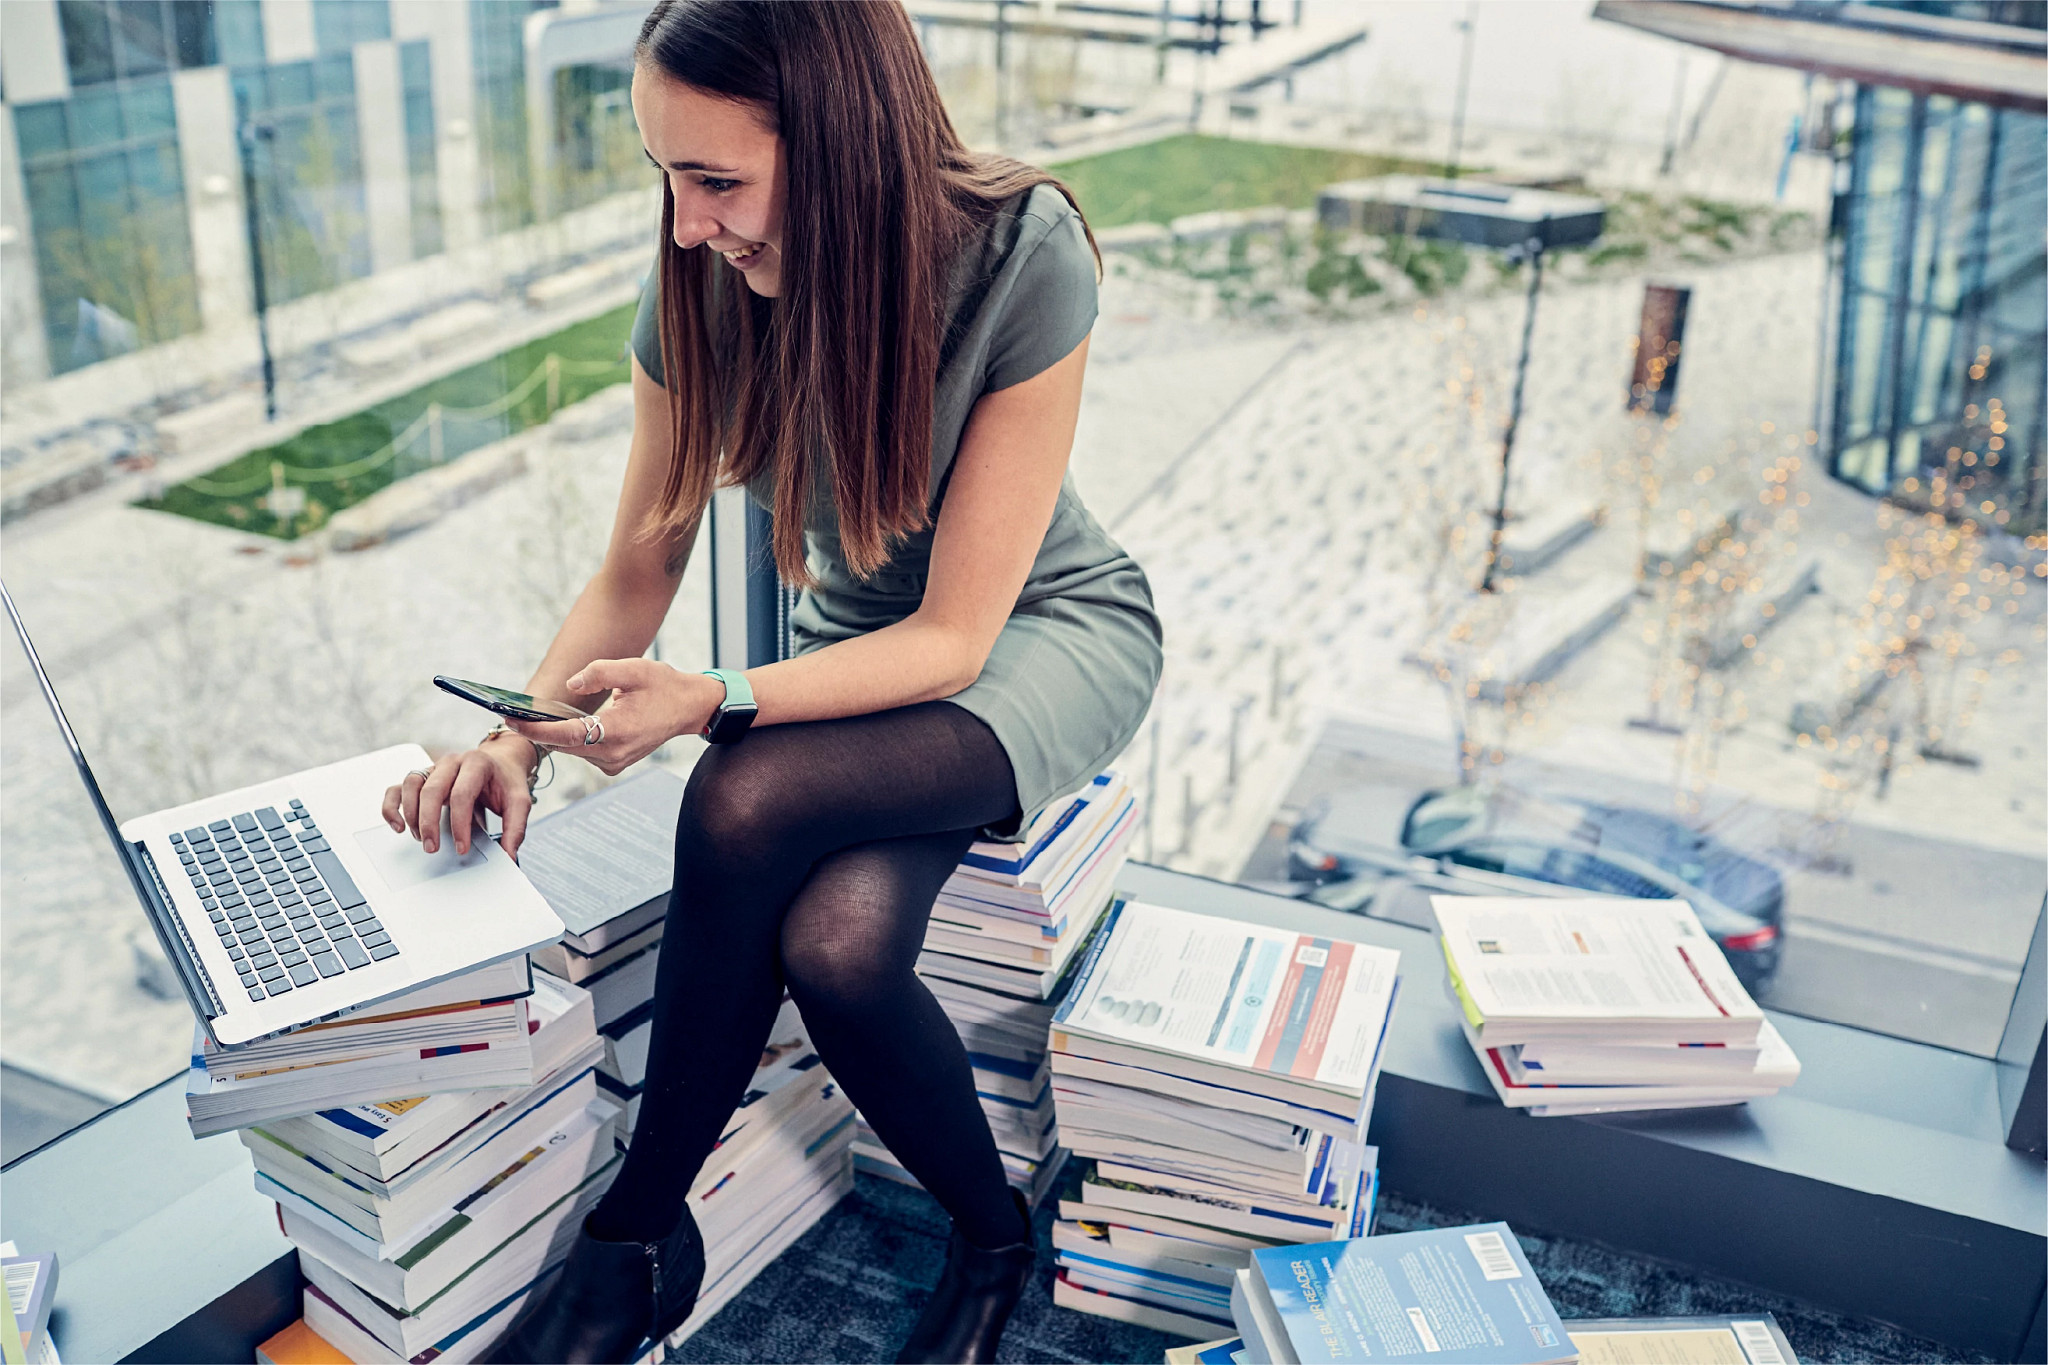 Dana T., Digital Communications Manager, works on her phone while sitting on a pile of books to tell how Cengage is reinventing education.